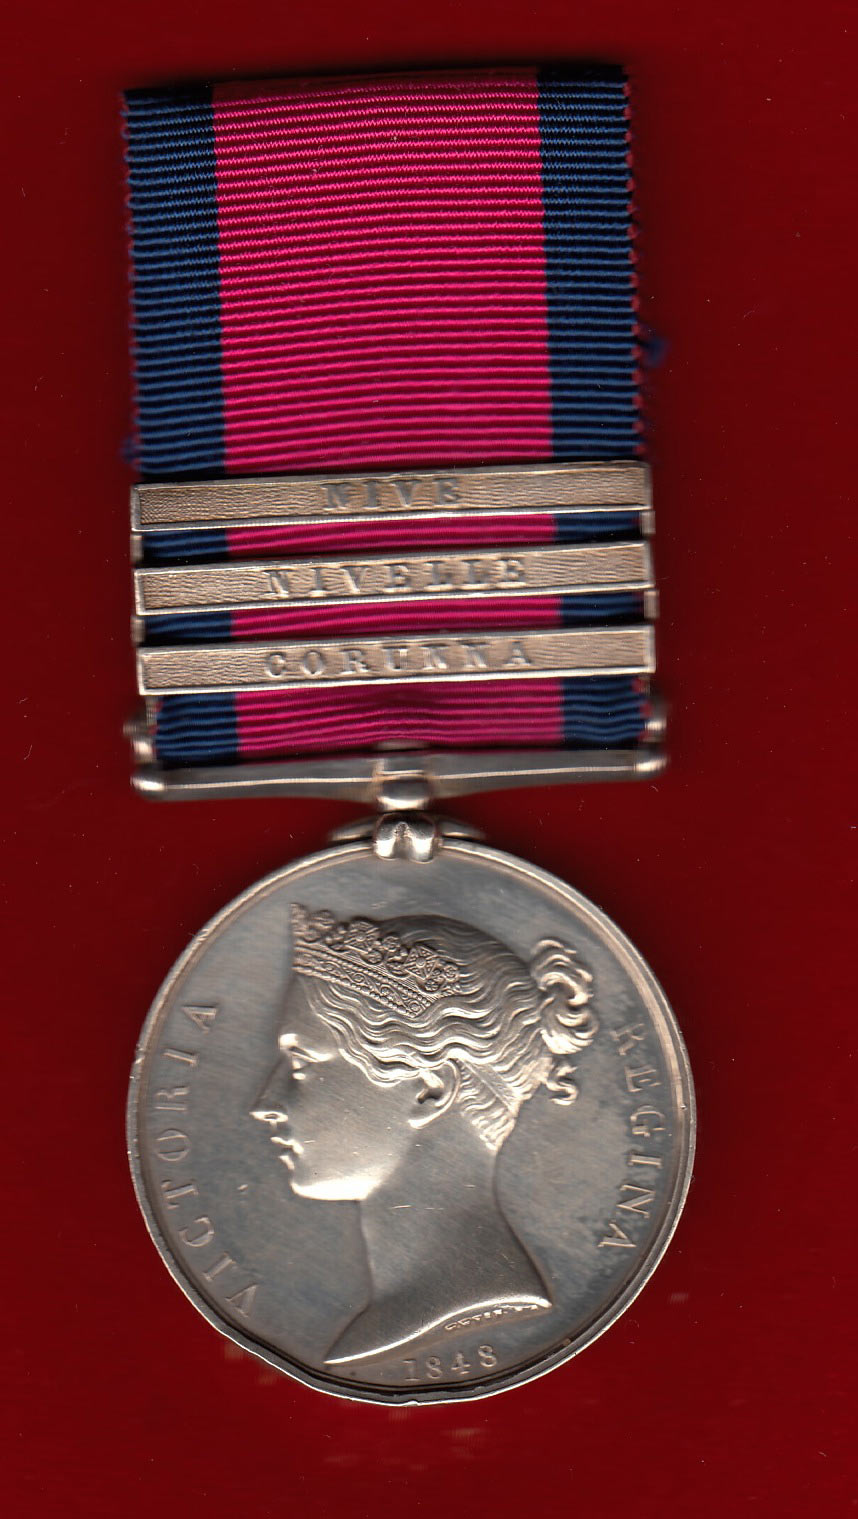 General Service Medal with clasp for the Battle of Corunna on 16th January 1809 in the Peninsular War